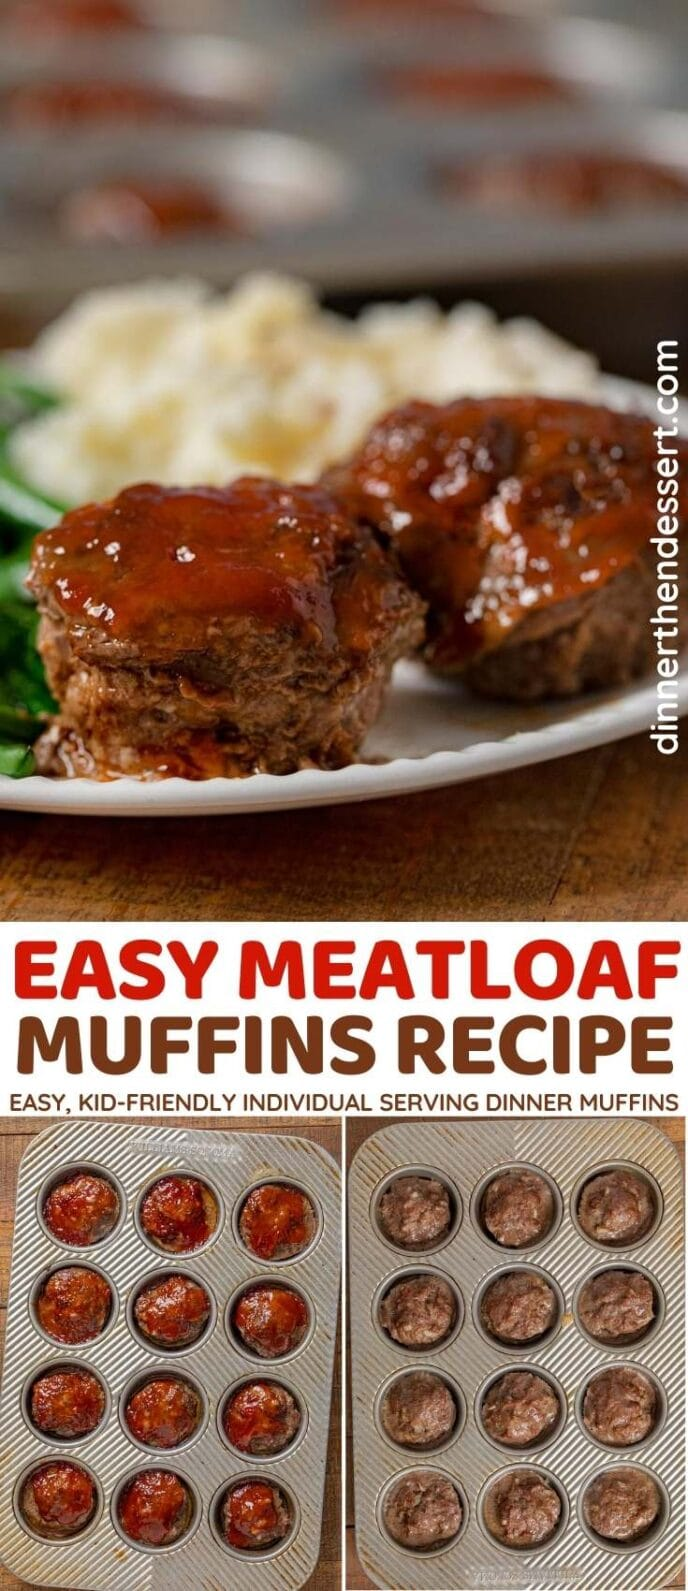 Meatloaf Muffins collage